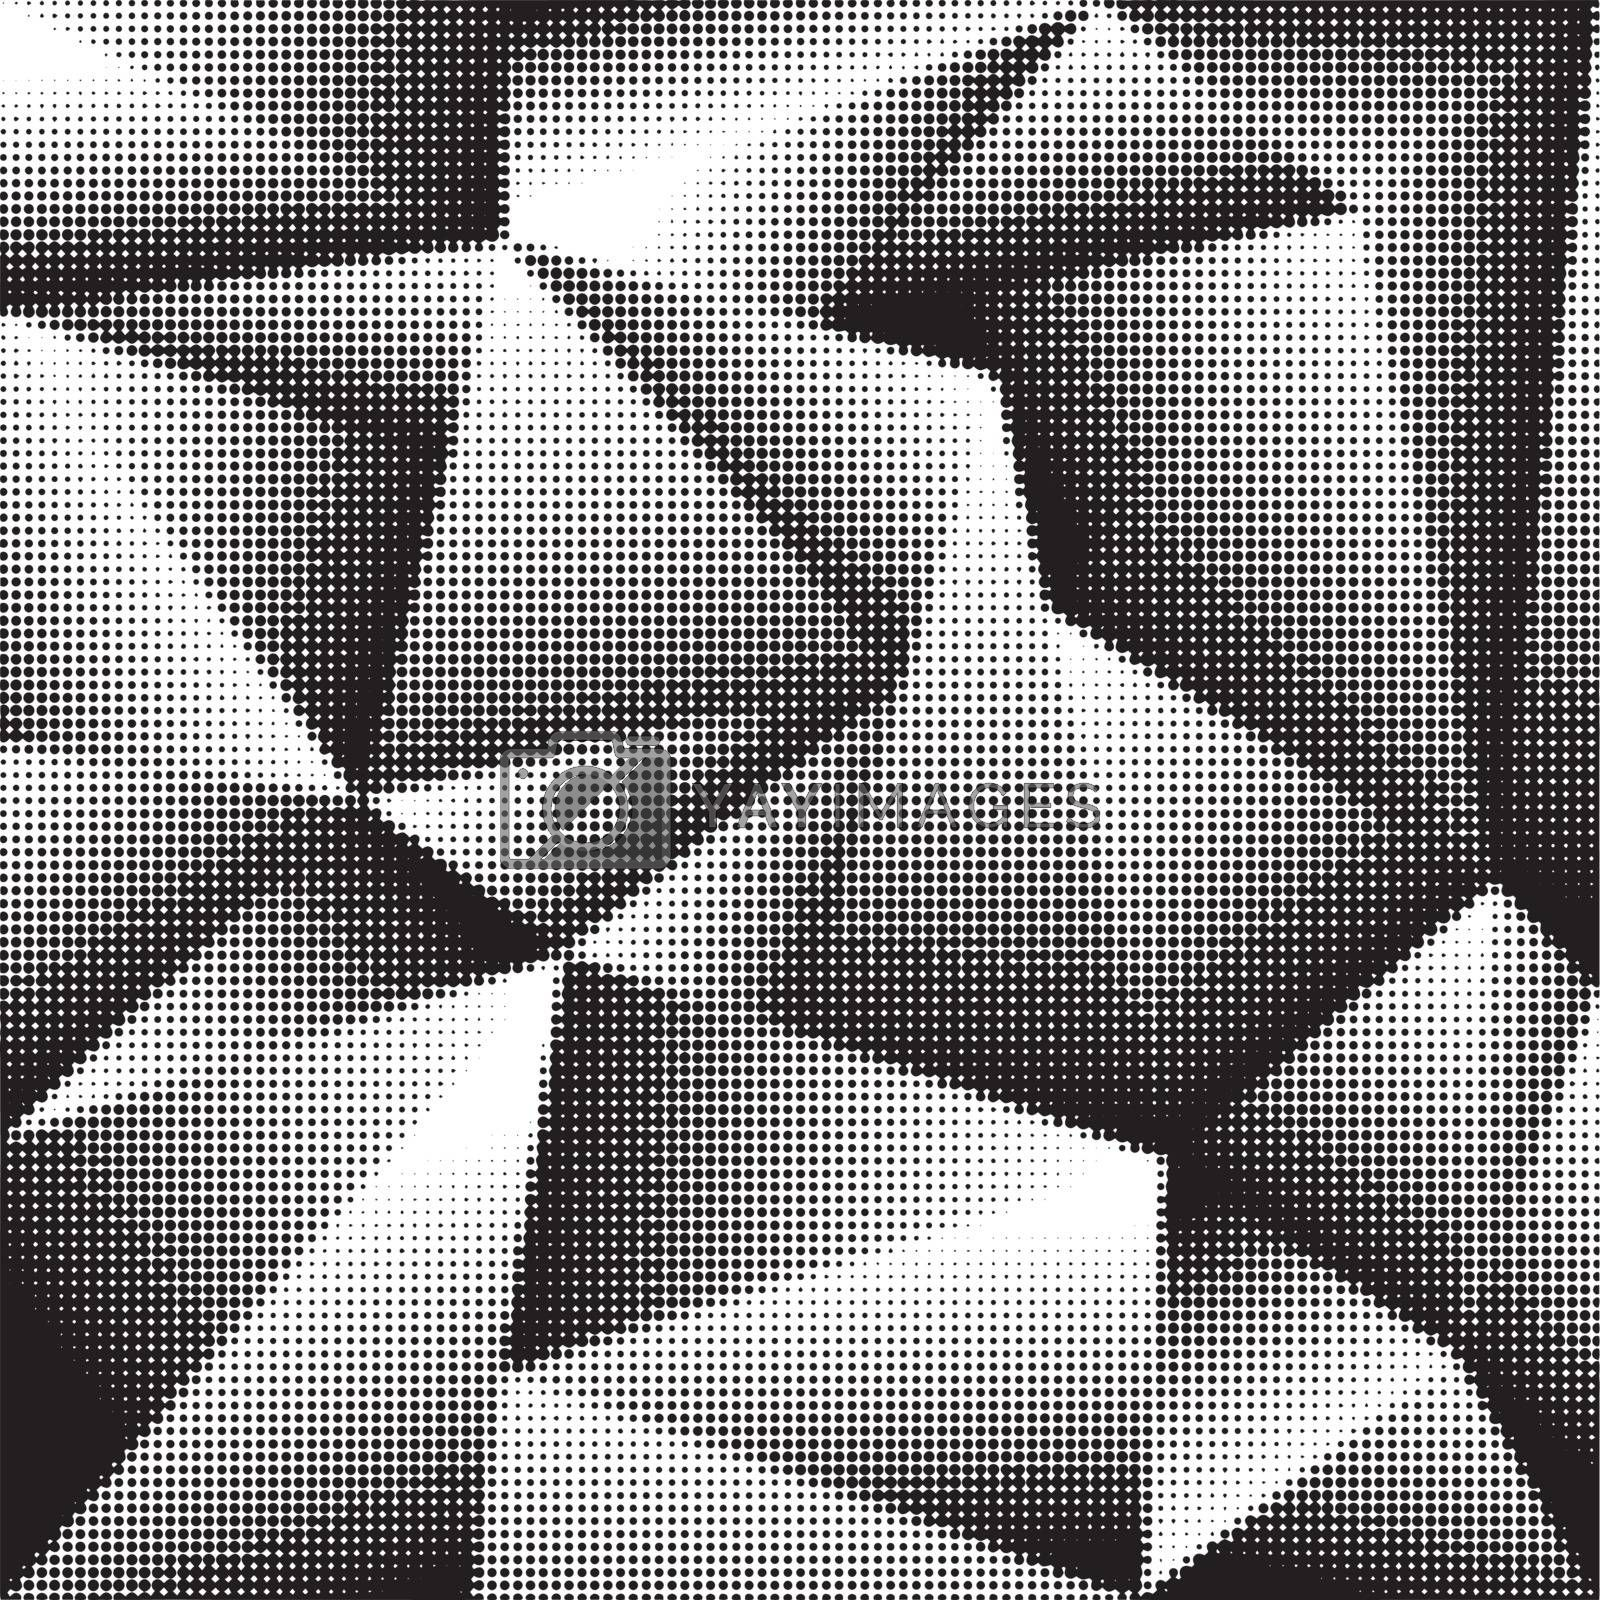 Abstract geometric background in halftone style with triangle shapes.